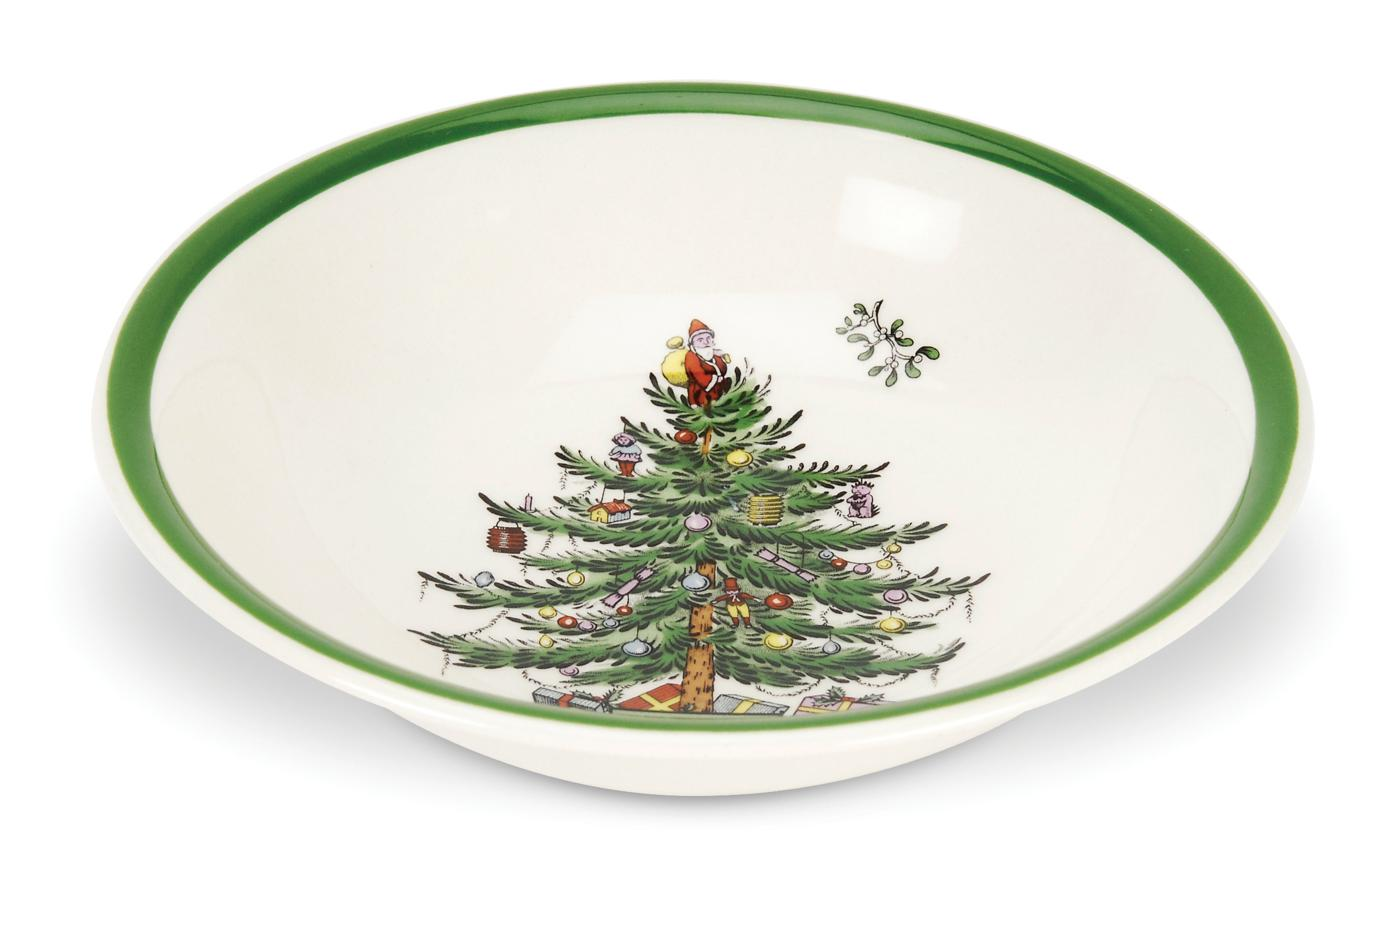 Spode Christmas Tree Set of 4 Ascot Cereal Bowls image number 0